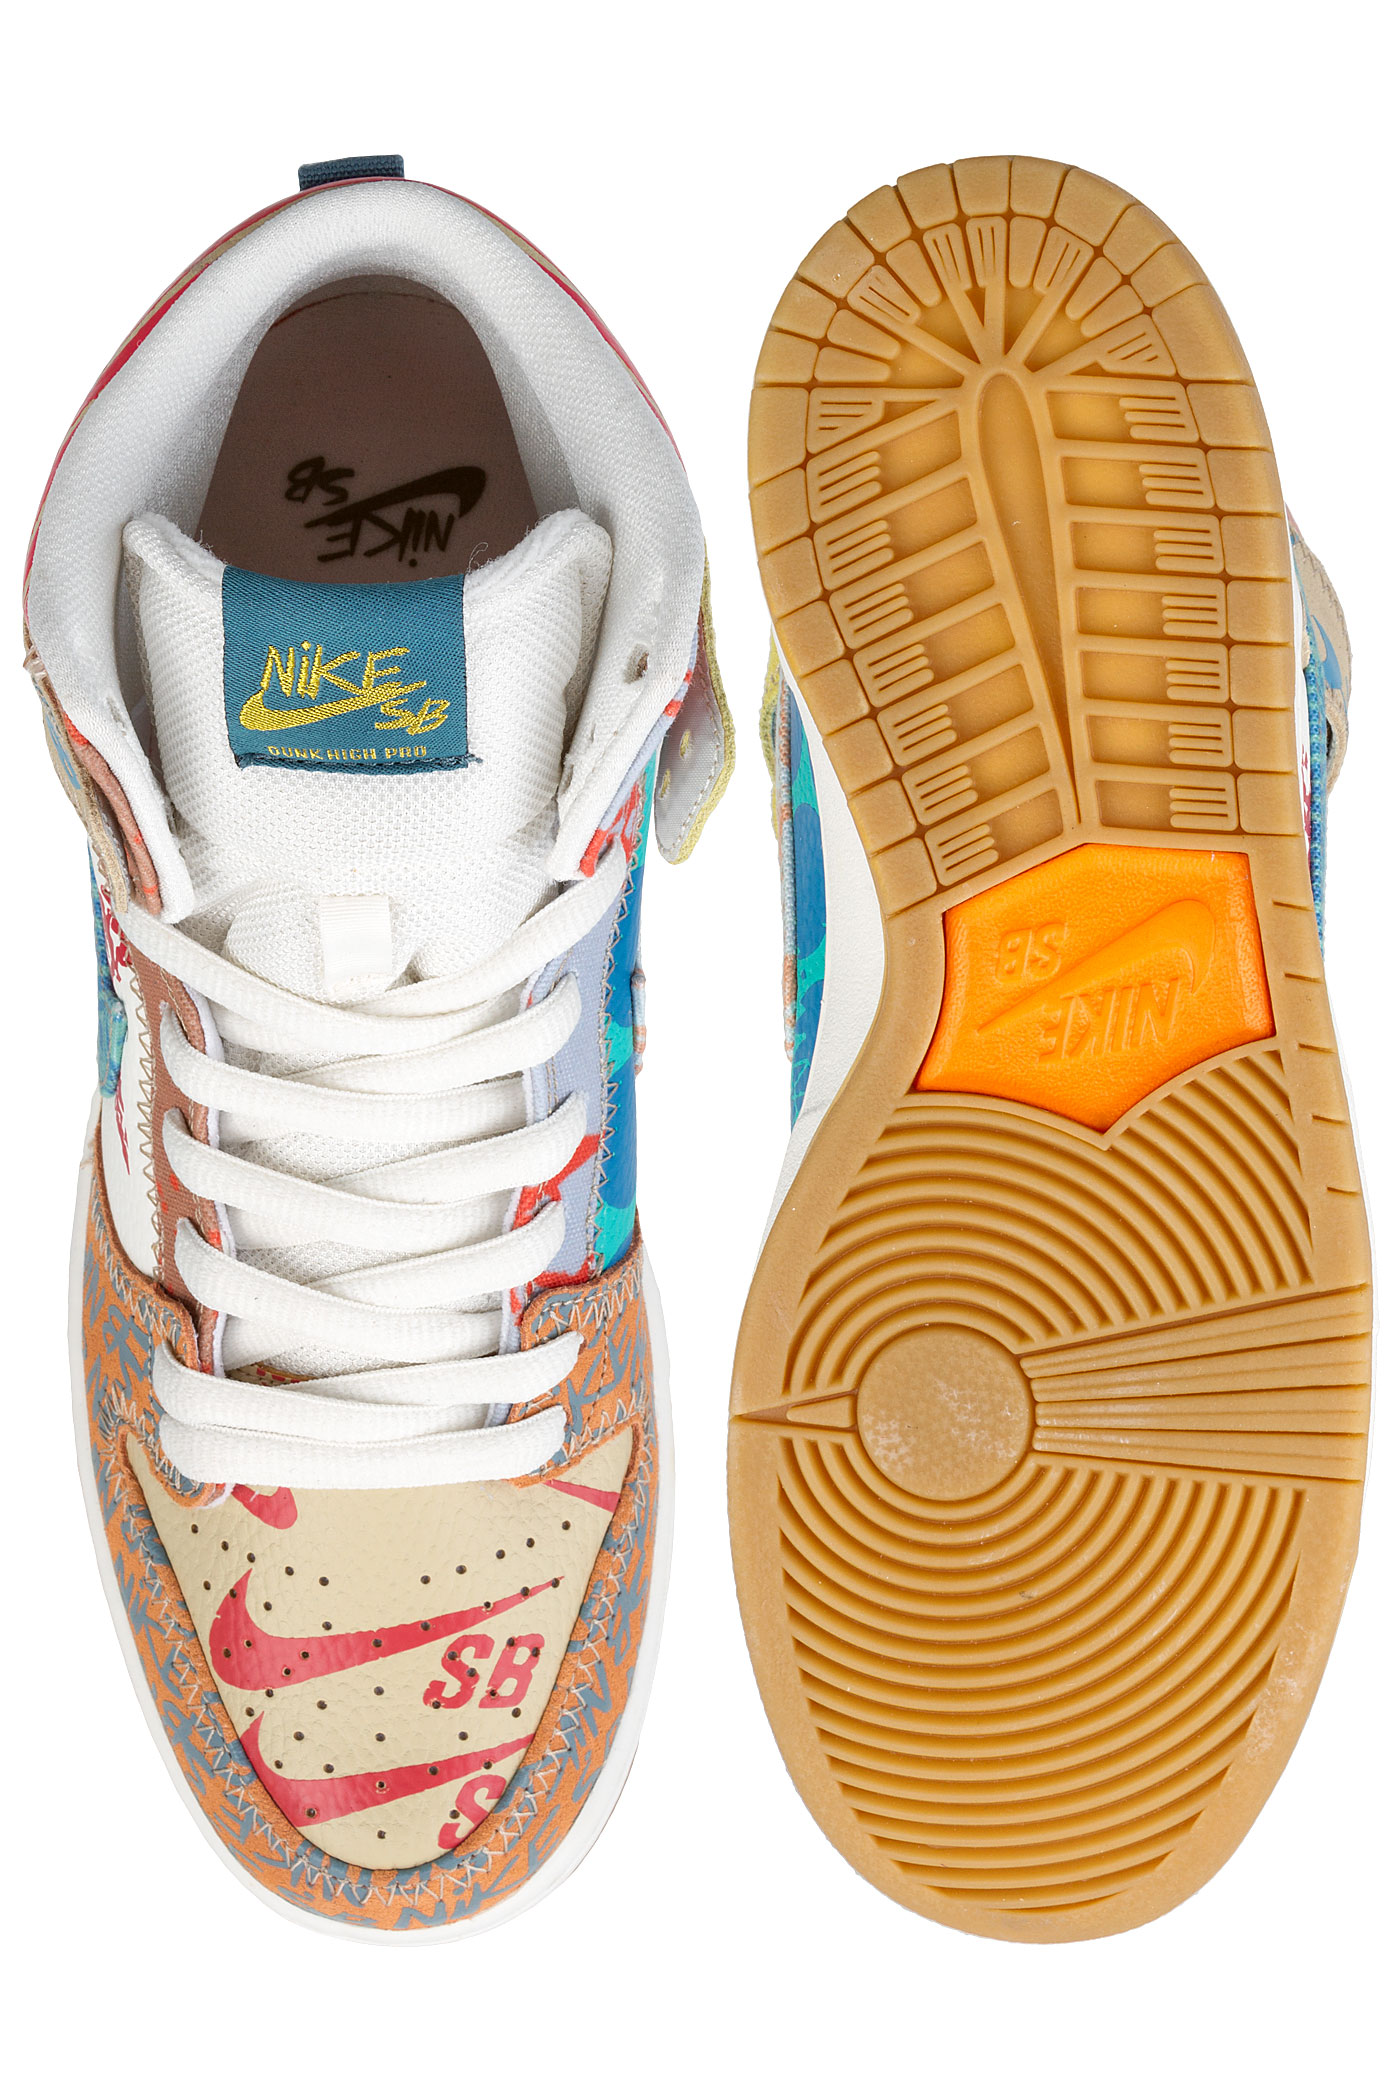 new arrival 44713 48074 ... official store nike sb x thomas campbell dunk high premium schuh ice  jade circuit . 73d3e